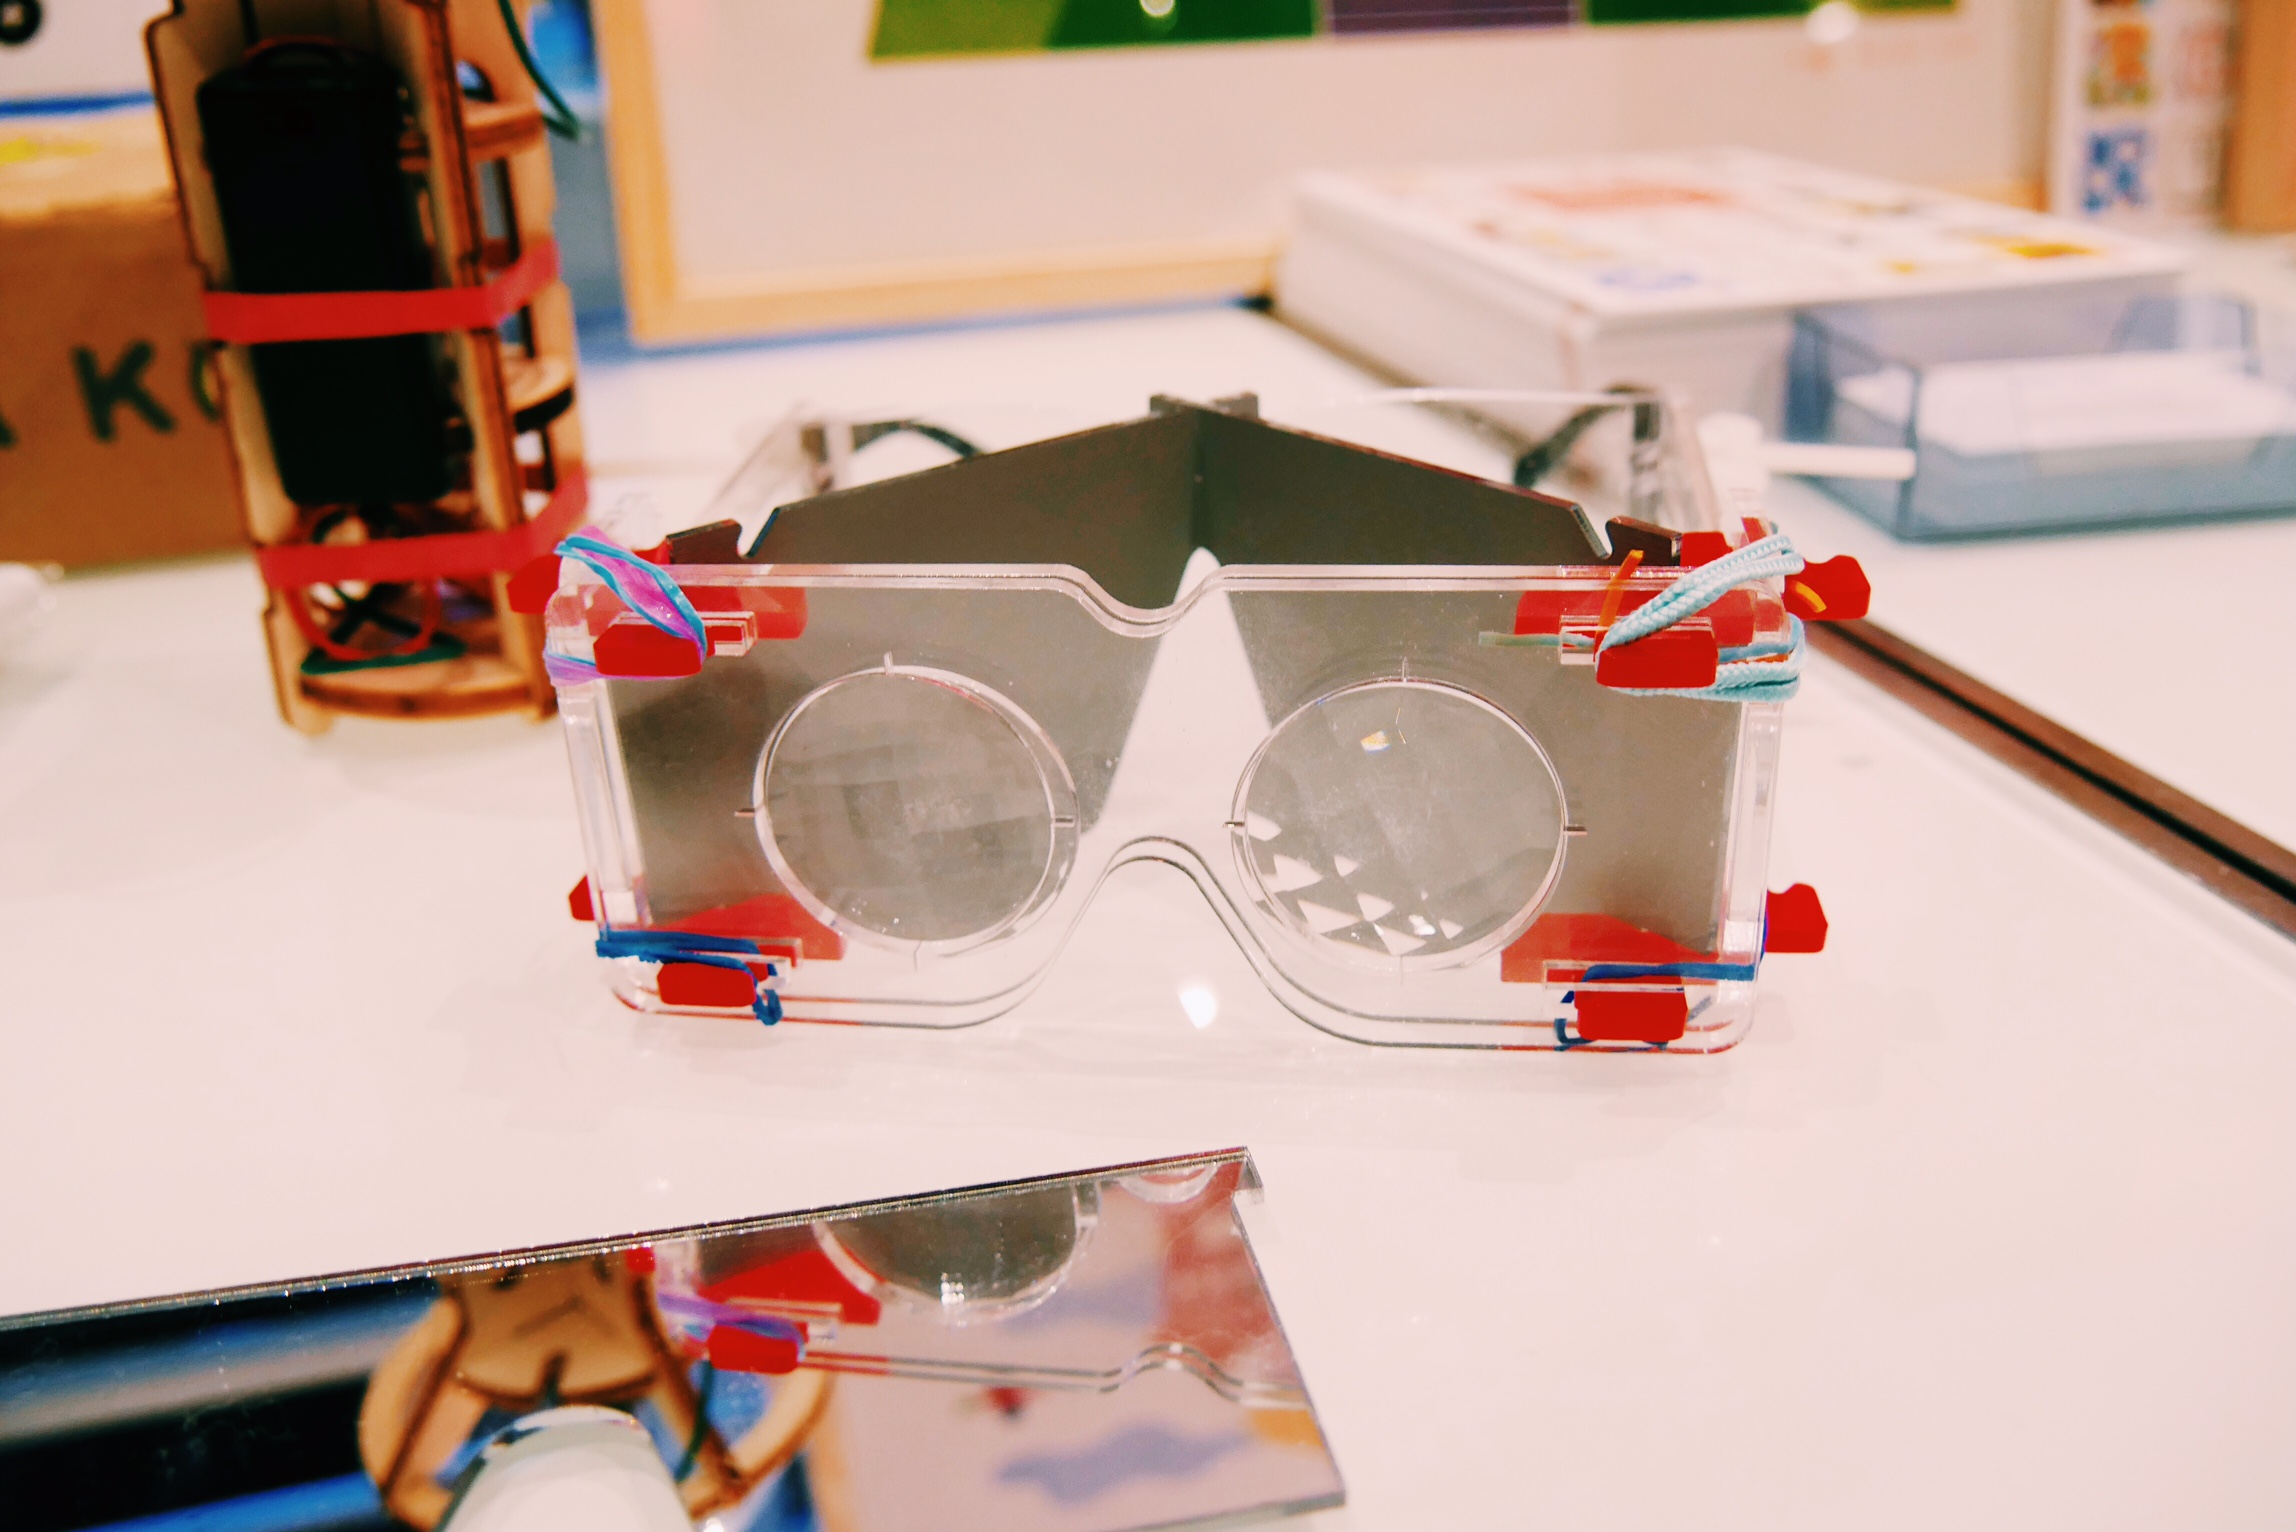 Koa-koa-box-la-vision-animale-lunettes-pour-enfants-de-5-a-10-ans-conception-designers-Noel-French-Tech-photo-usofparis-blog